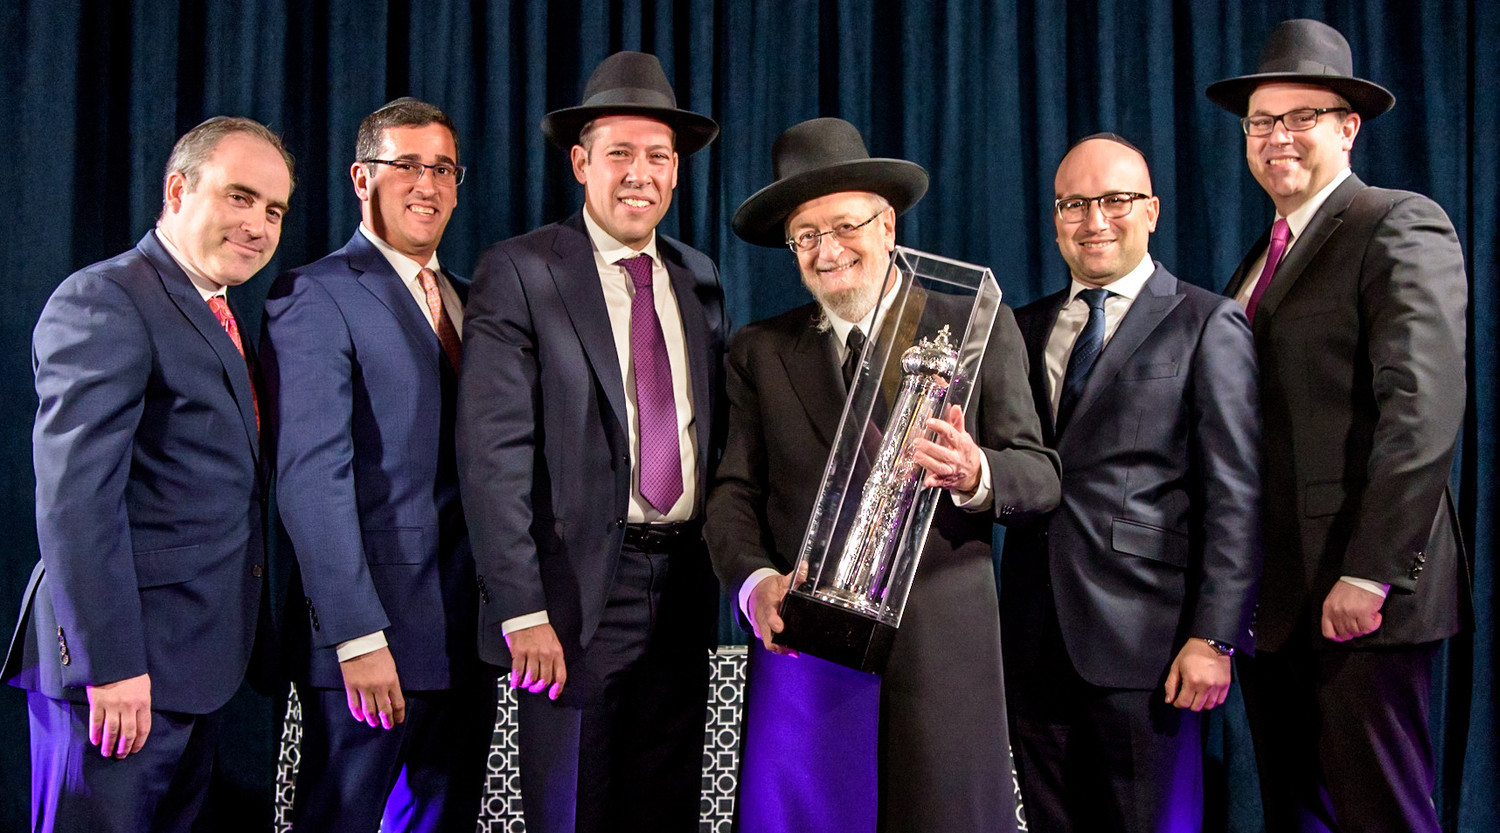 At the Kehillas Bais Yehuda Tzvi of Cedarhurst dinner, from left: Dinner chairs Daniel Burg and Michael Greenfield; former president Tuli Tepfer; Harav Feitman; dinner co-chair Eli Moskowitz, and president Ari Hahn.